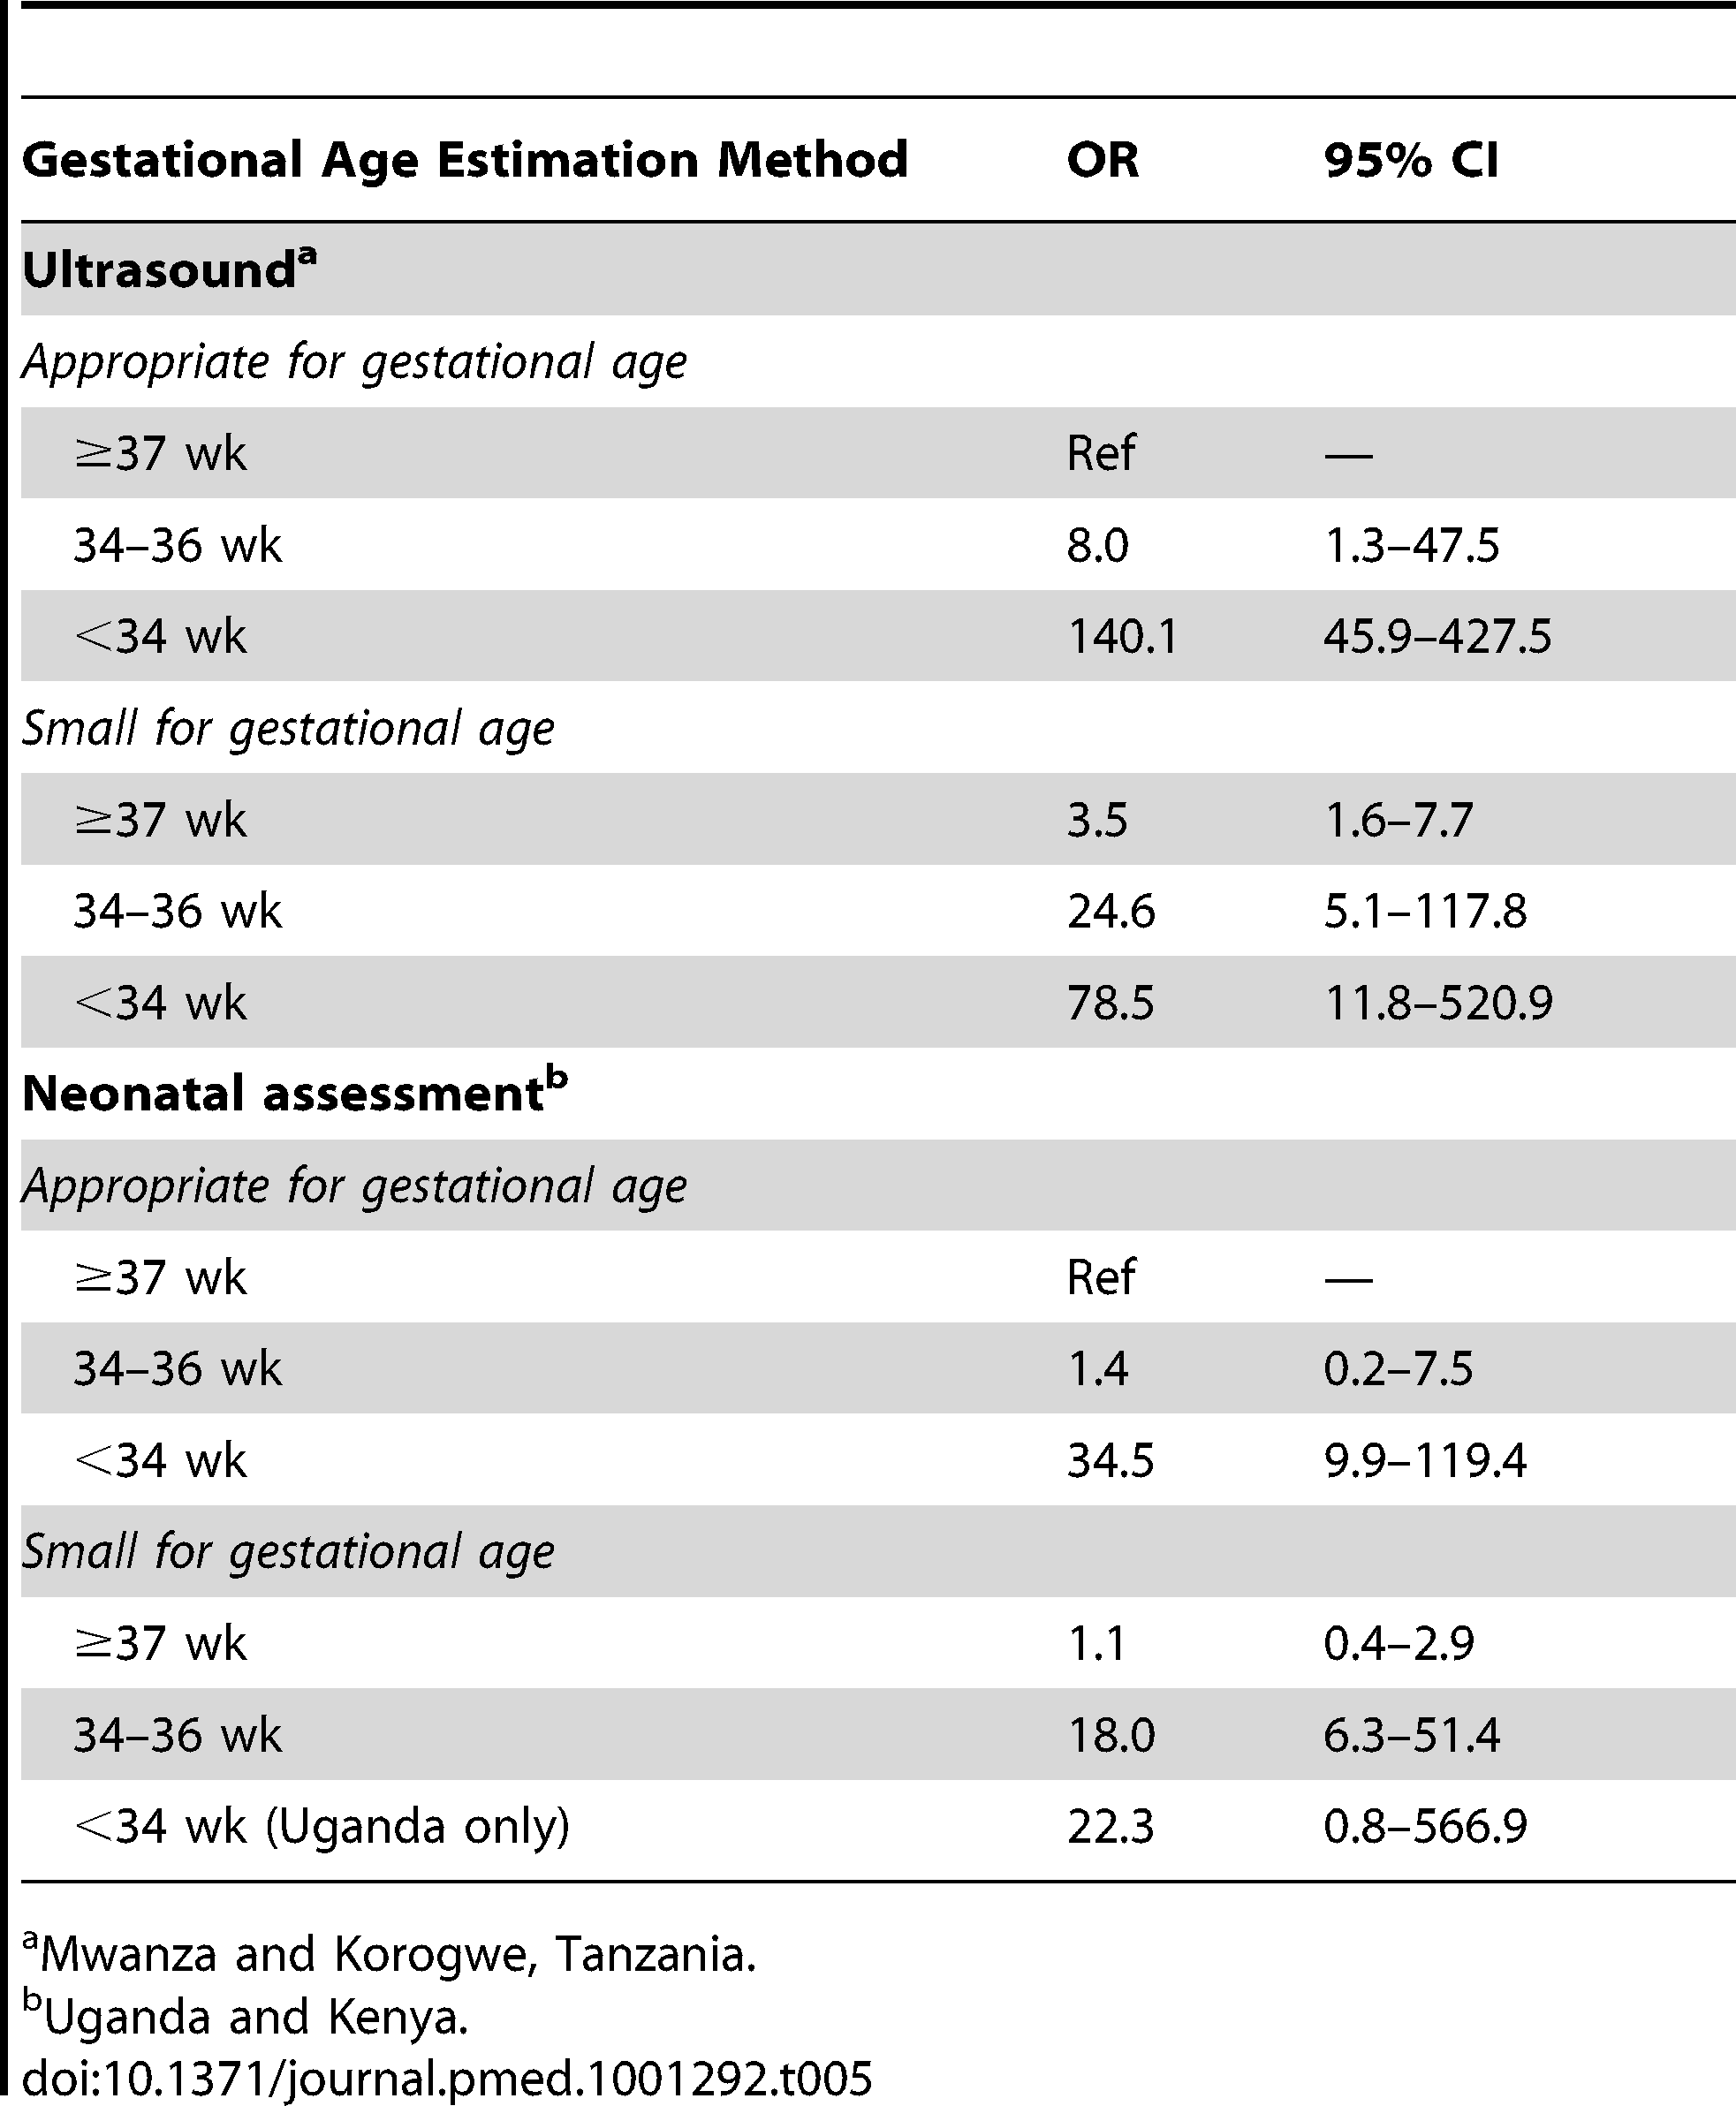 Methodological stratification of neonatal mortality outcomes for preterm babies (<34 and 34–36 wk), stratified by weight for gestational age (appropriate [AGA]≥10%, or small [SGA]<10%), using term and appropriate for gestational age as the reference group.